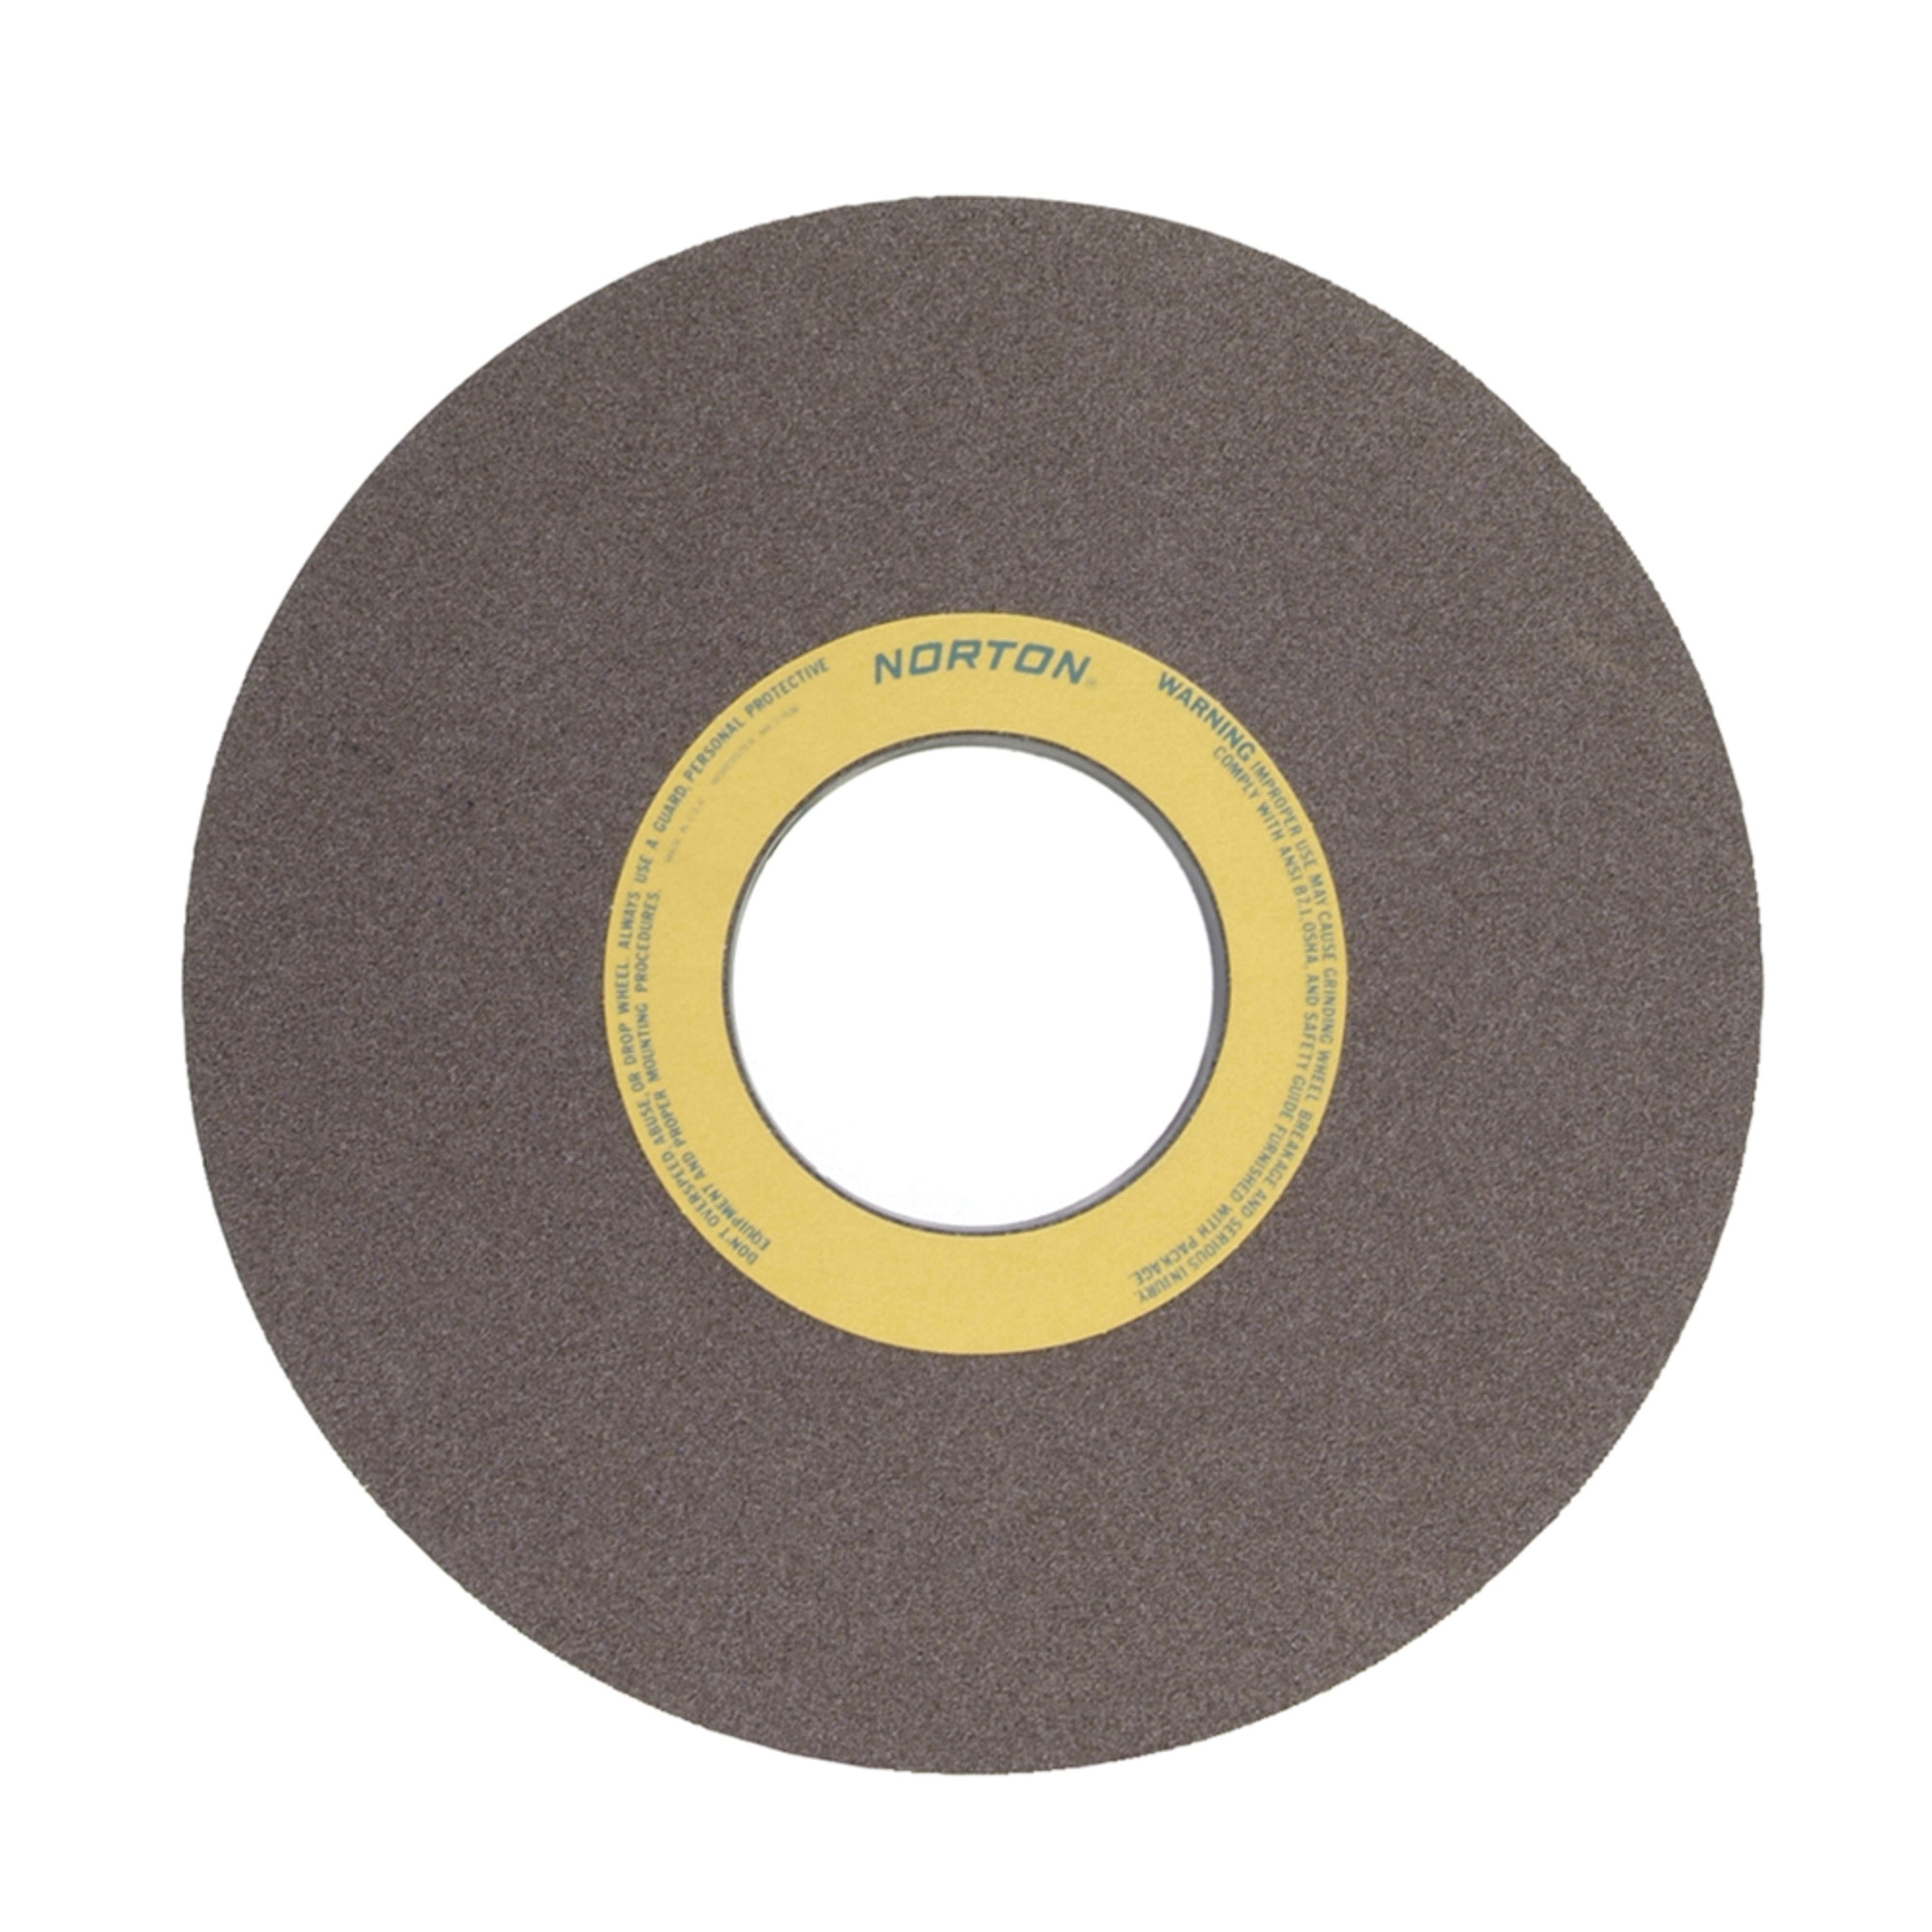 Norton® 69210466697 64A Surface and Cylindrical Grinding Wheel, 30 in Dia x 3 in THK, 12 in Center Hole, 60 Grit, Aluminum Oxide Abrasive